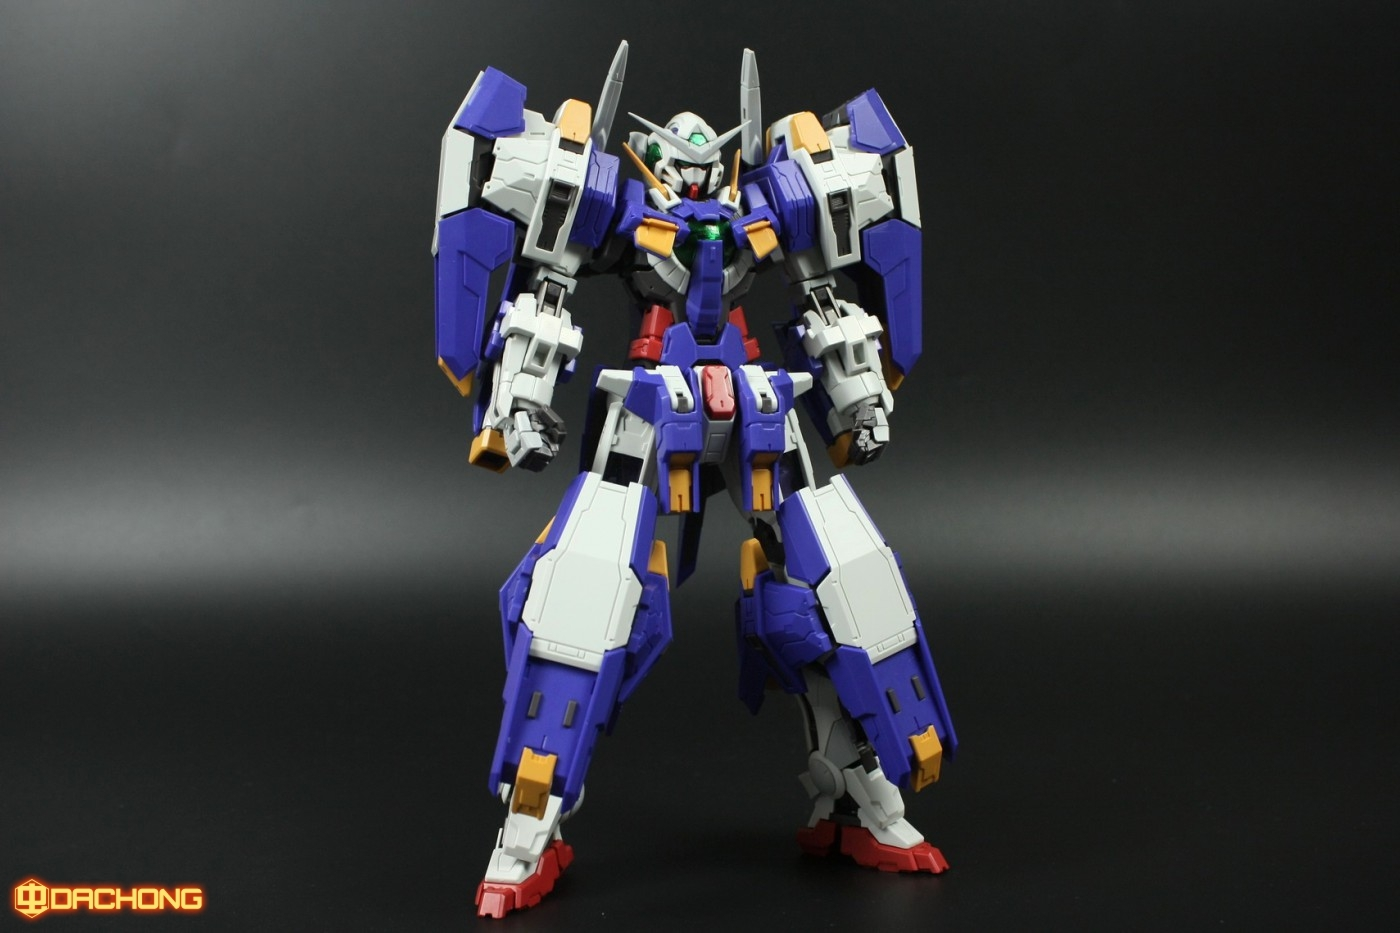 S254_MG_exia_HS_review_inask_063.jpg